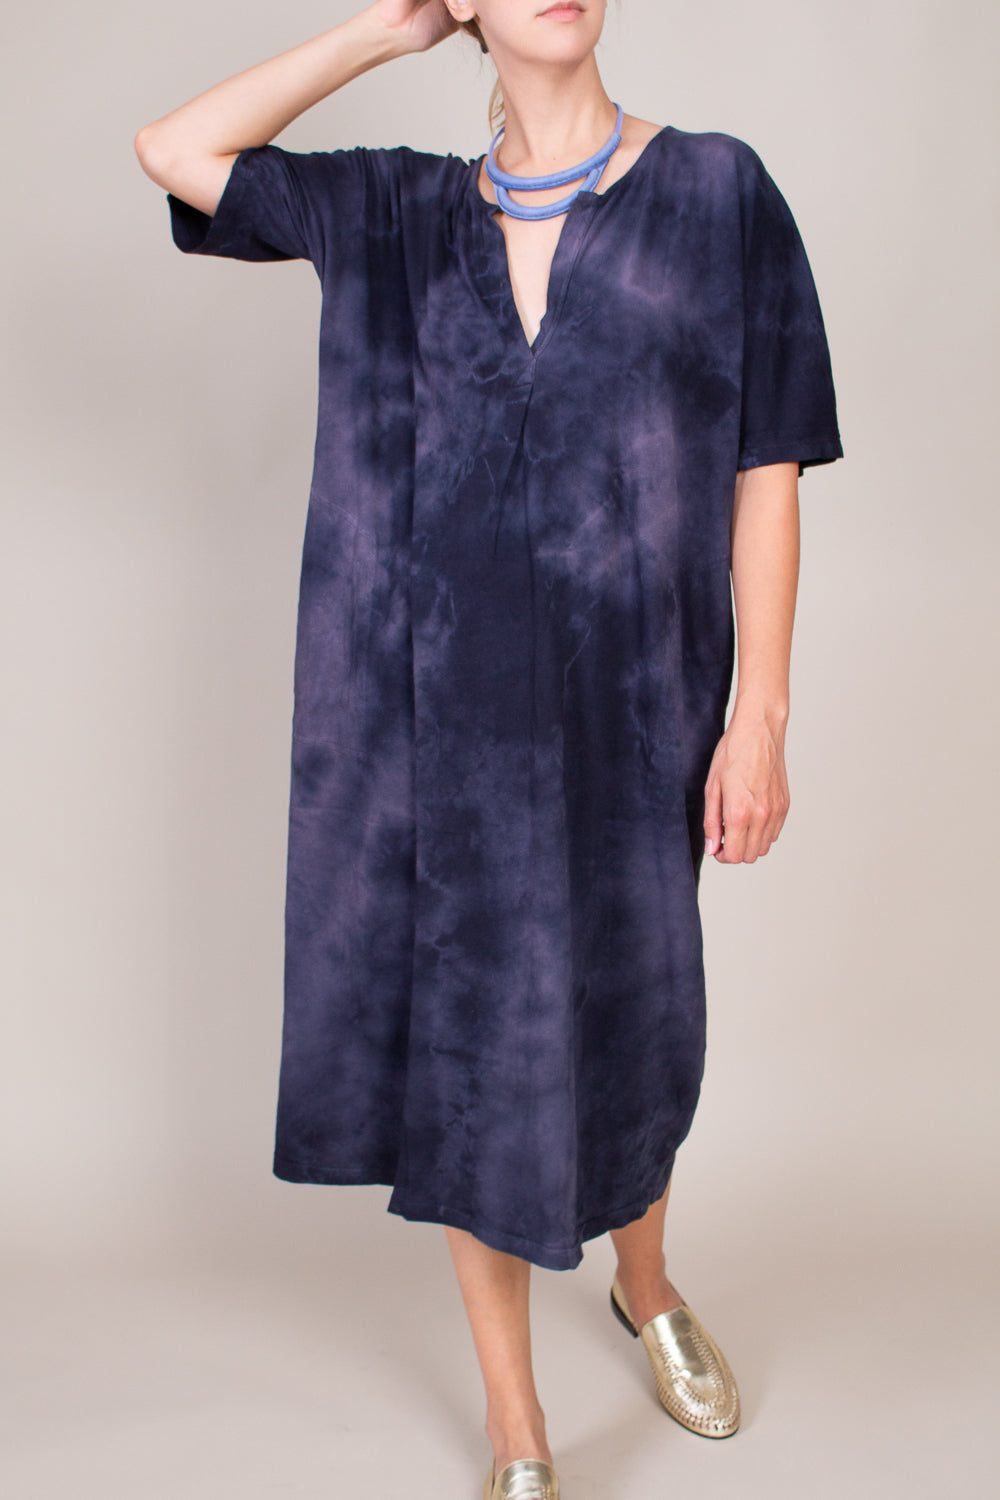 Henley Dress in Black Tie Dye